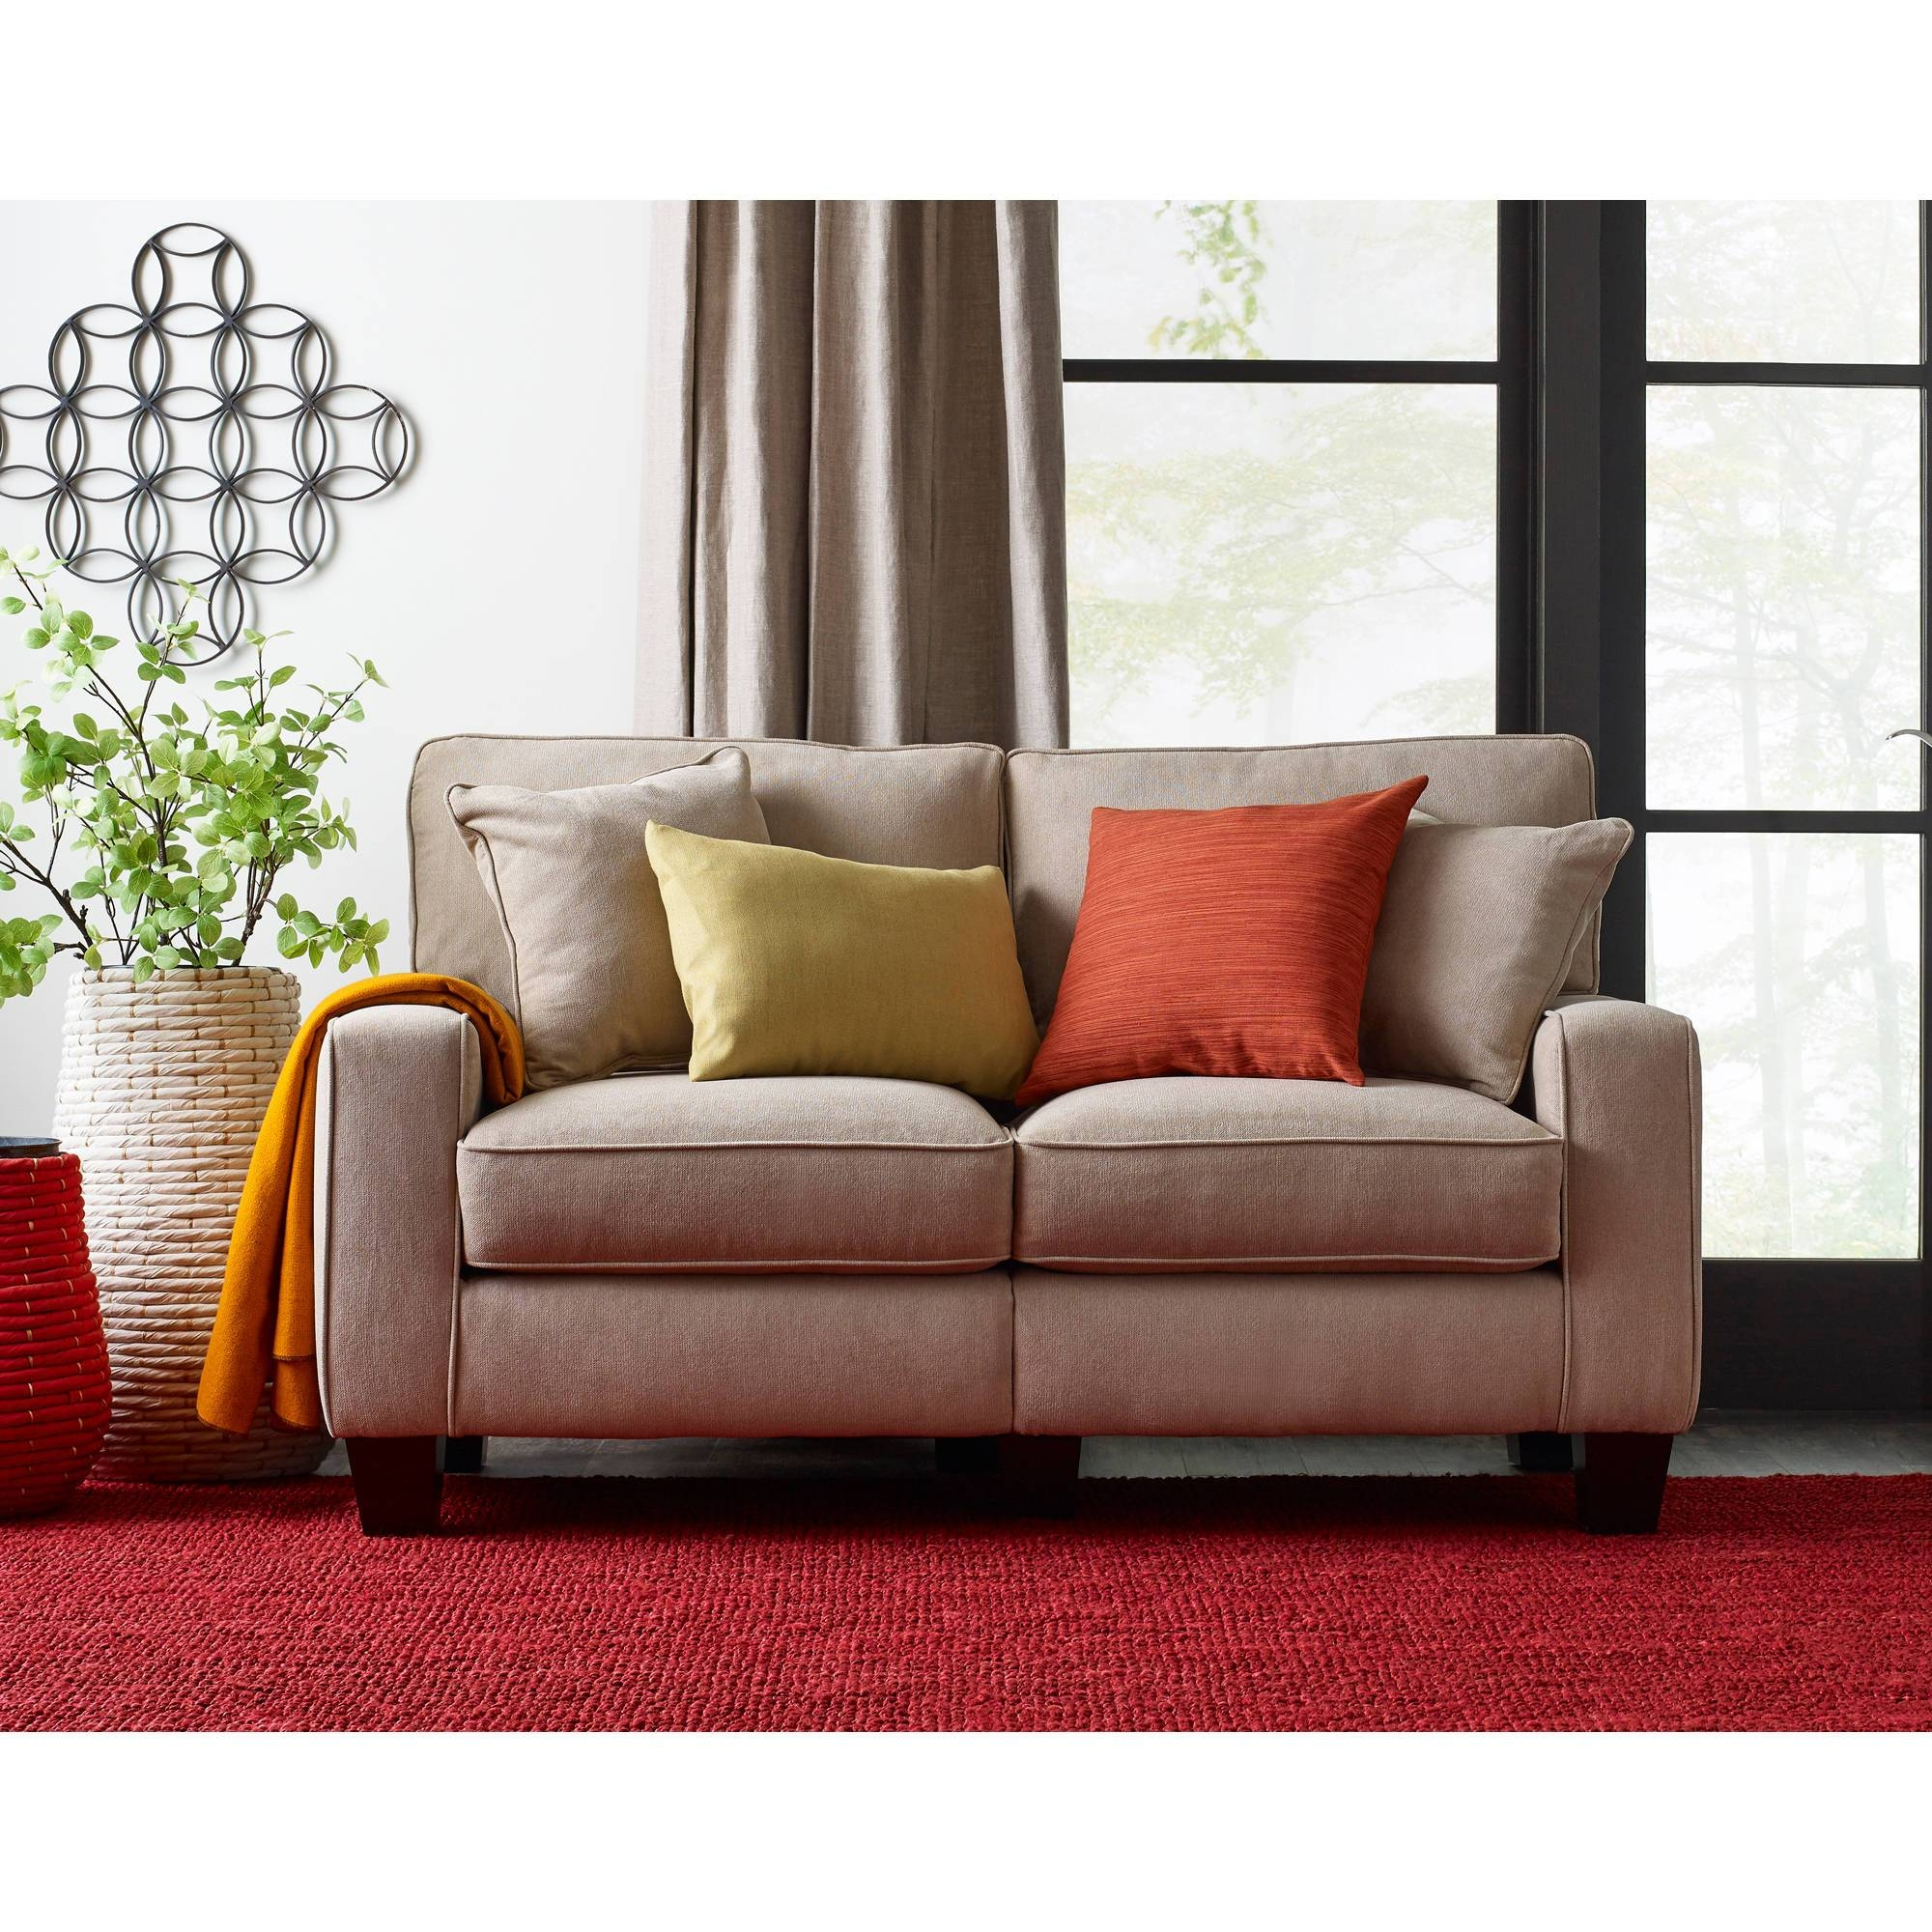 Sofa: Outstanding 2017 Sectional Sofas Cheap World Market Loveseat regarding Colorful Sectional Sofas (Image 24 of 30)